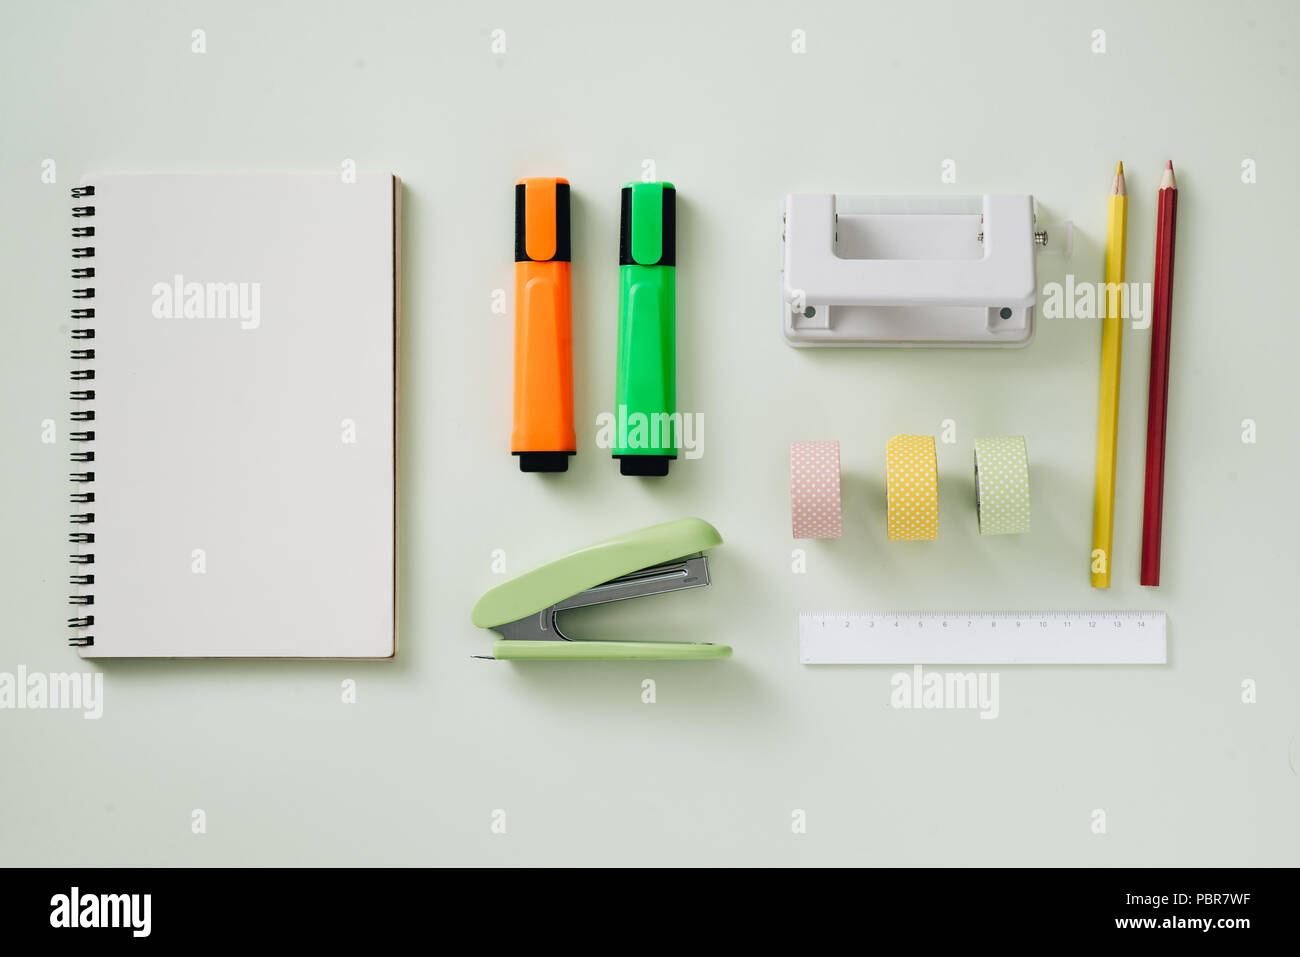 Paper tape roll, paper clips, and notepads laying on a wooden table, School supplies, Office supplies, Back to school Stock Photo